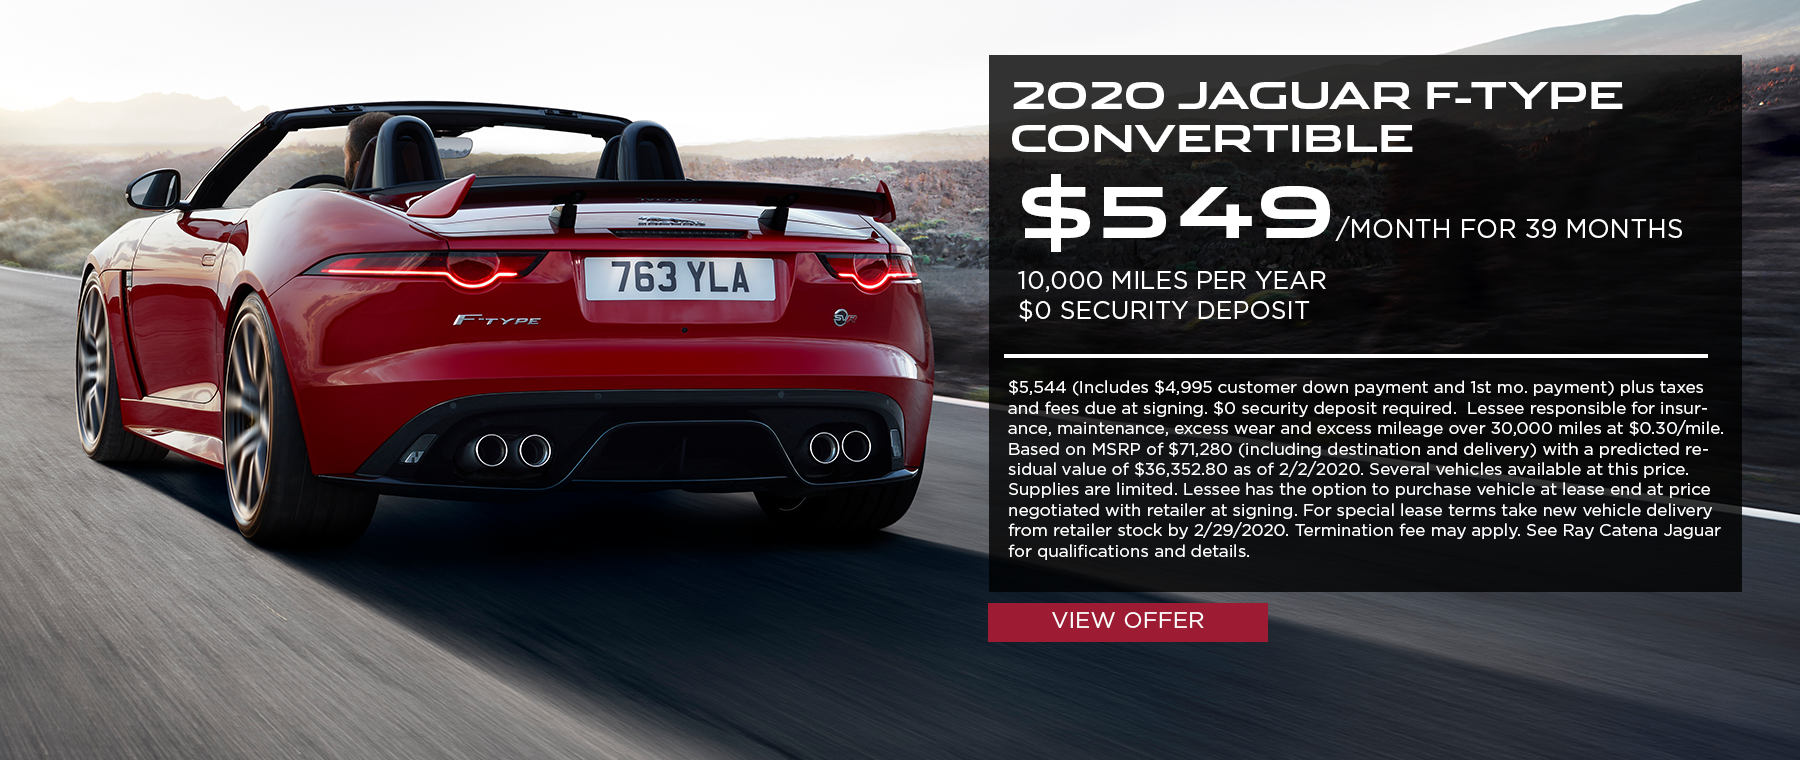 2020 Jaguar F-TYPE Convertible · $549/mo. · 39 mos. · 10,000 miles per year  $5,544 (Includes $4,995 customer down payment and 1st mo. payment) plus taxes and fees due at signing. $0 security deposit required.  Lessee responsible for insurance, maintenance, excess wear and excess mileage over 30,000 miles at $0.30/mile. Based on MSRP of $71,280 (including destination and delivery) with a predicted residual value of $36,352.80 as of 2/2/2020. Several vehicles available at this price. Supplies are limited. Lessee has the option to purchase vehicle at lease end at price negotiated with retailer at signing. For special lease terms take new vehicle delivery from retailer stock by 2/29/2020. Termination fee may apply. See Ray Catena Jaguar for qualifications and details.  Click to view offer. Red F-TYPE on highway